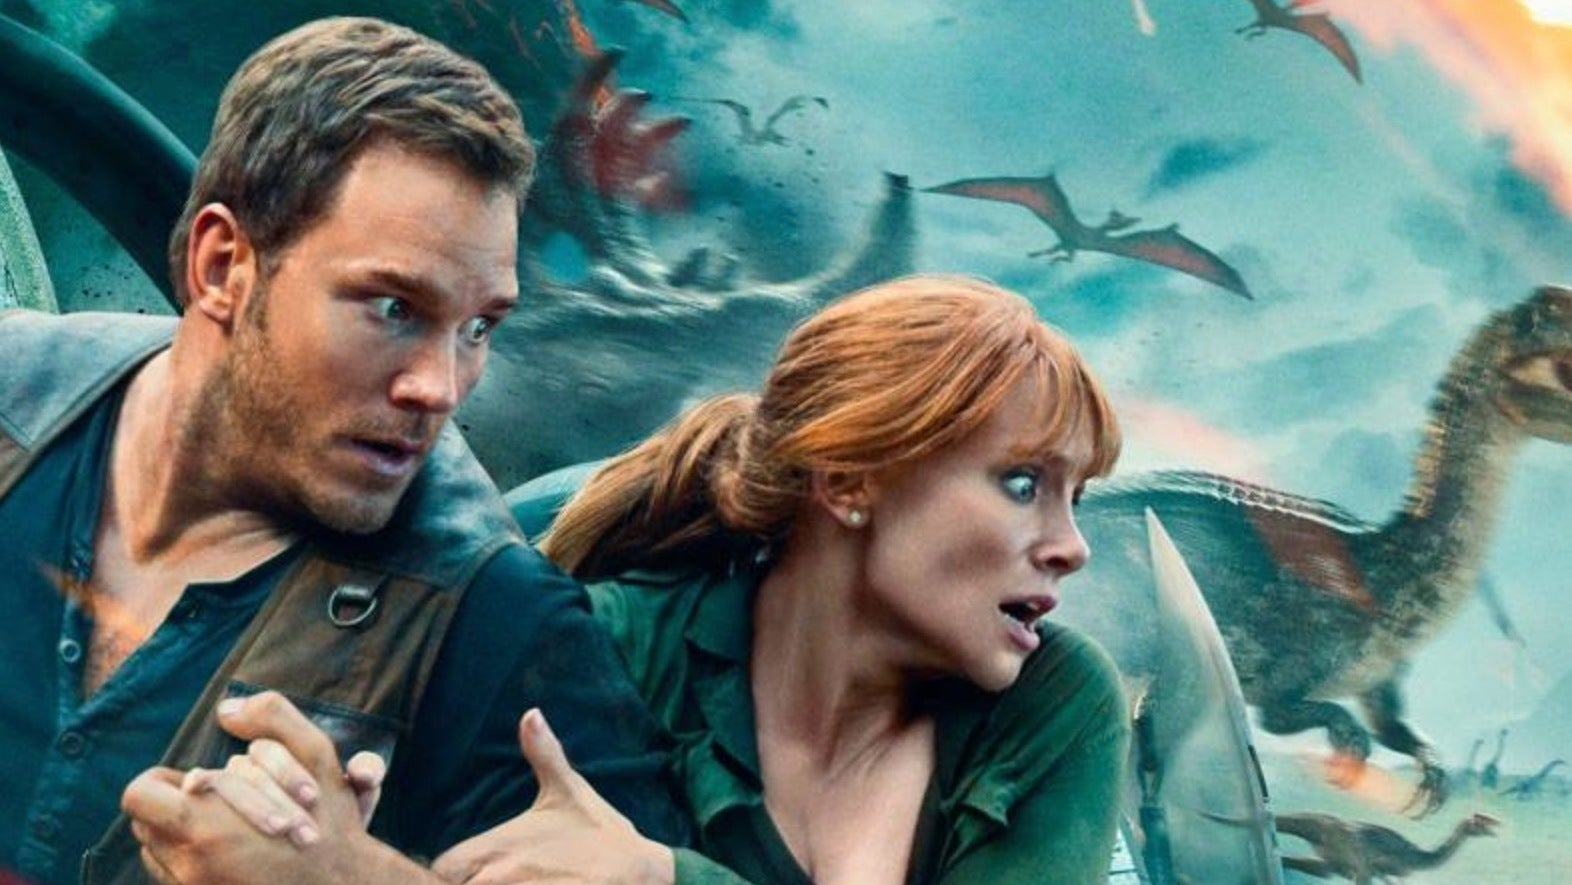 A New Jurassic World Video Explains How Fallen KingdomAims To Change The Franchise